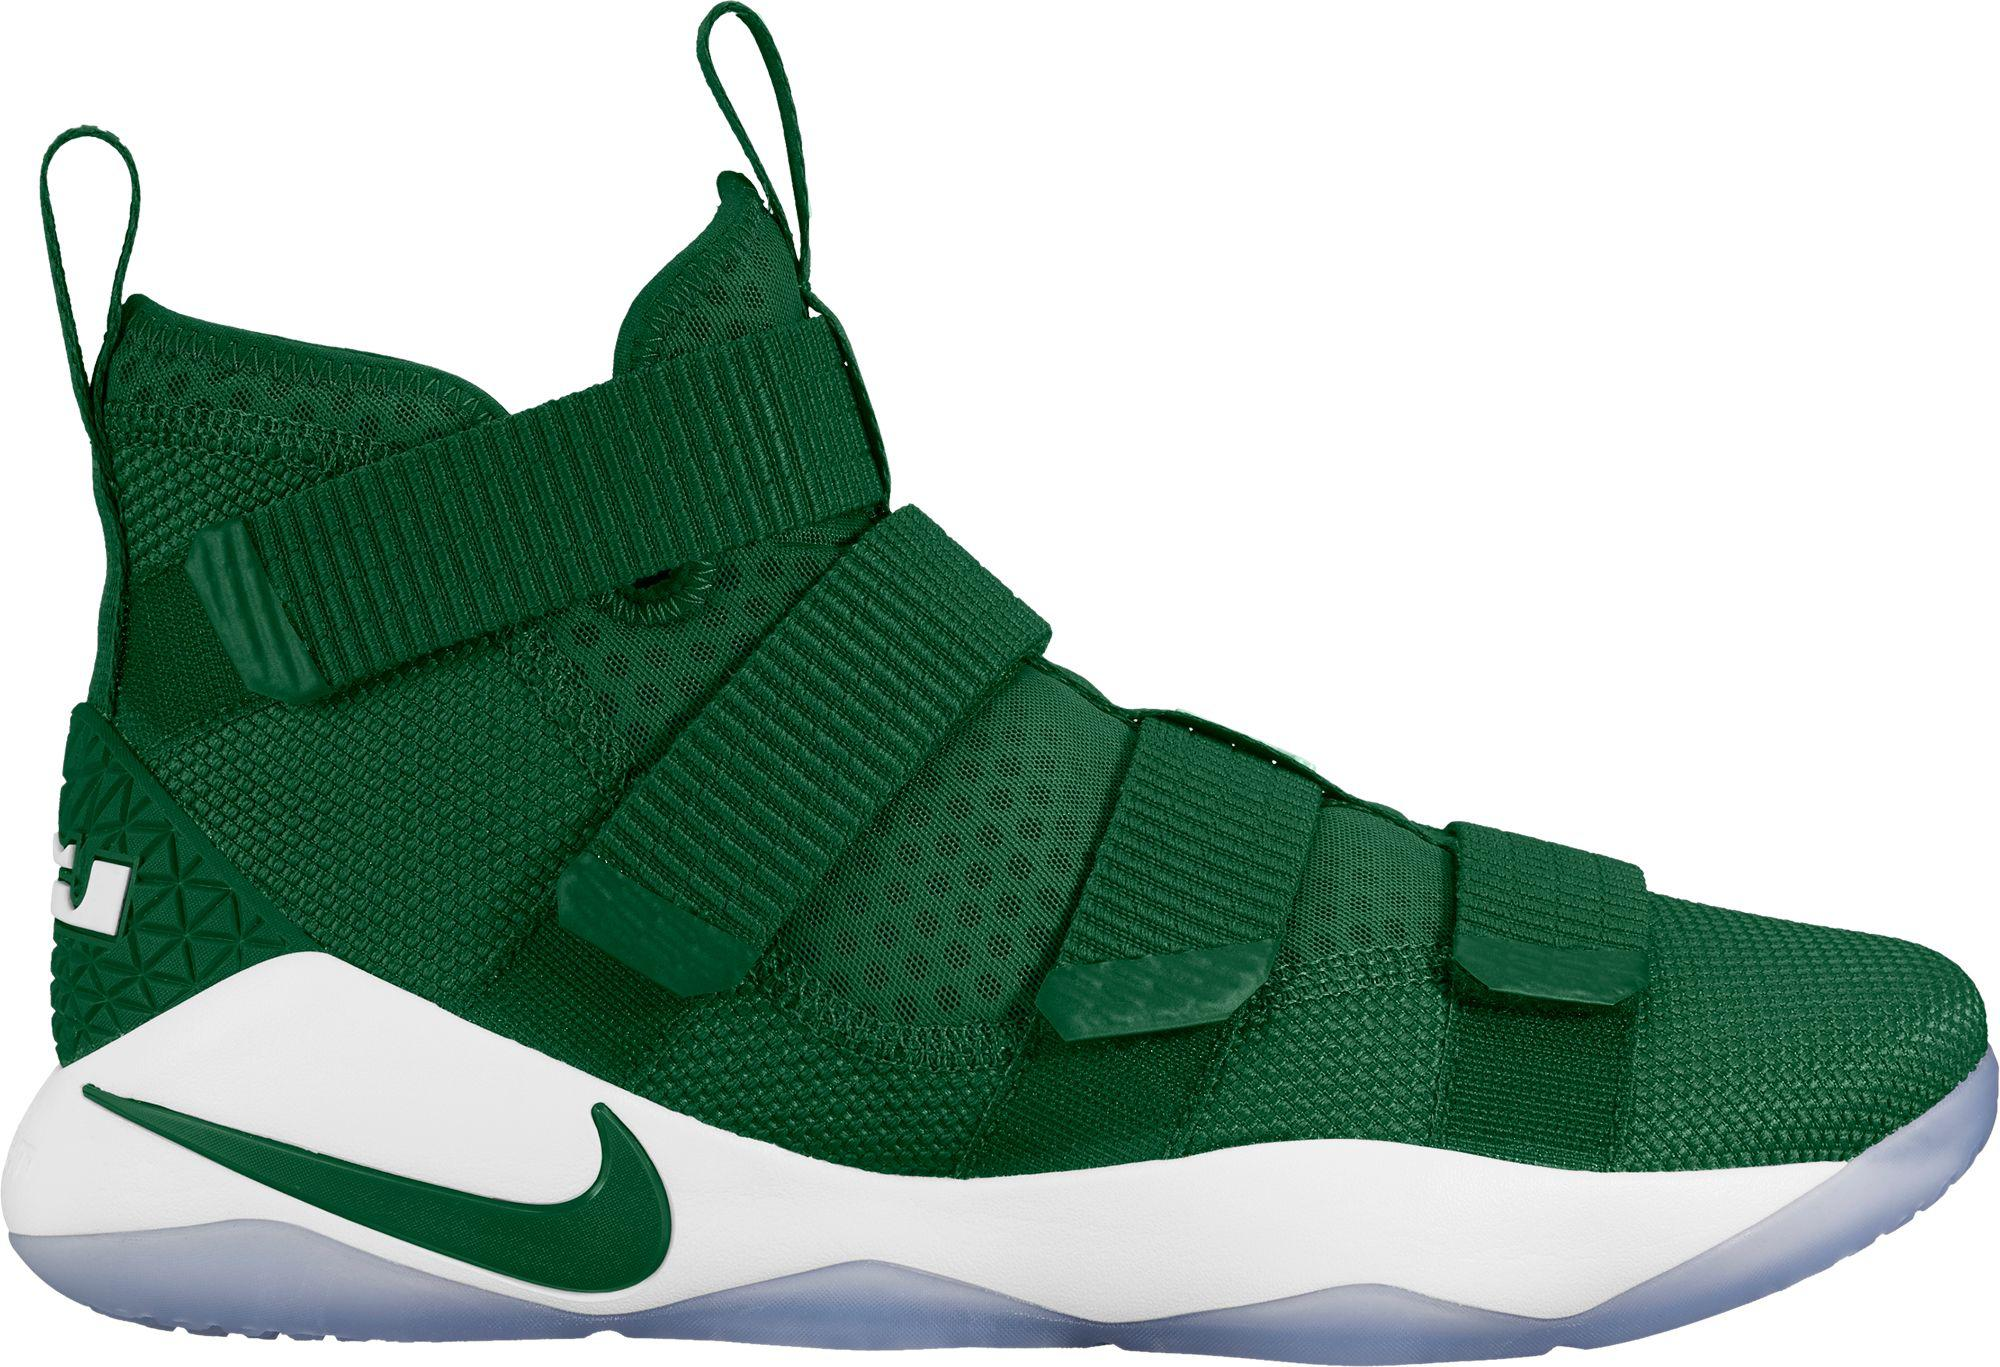 efb61a903349 Nike Zoom Lebron Soldier Xi Basketball Shoes in Green for Men - Lyst